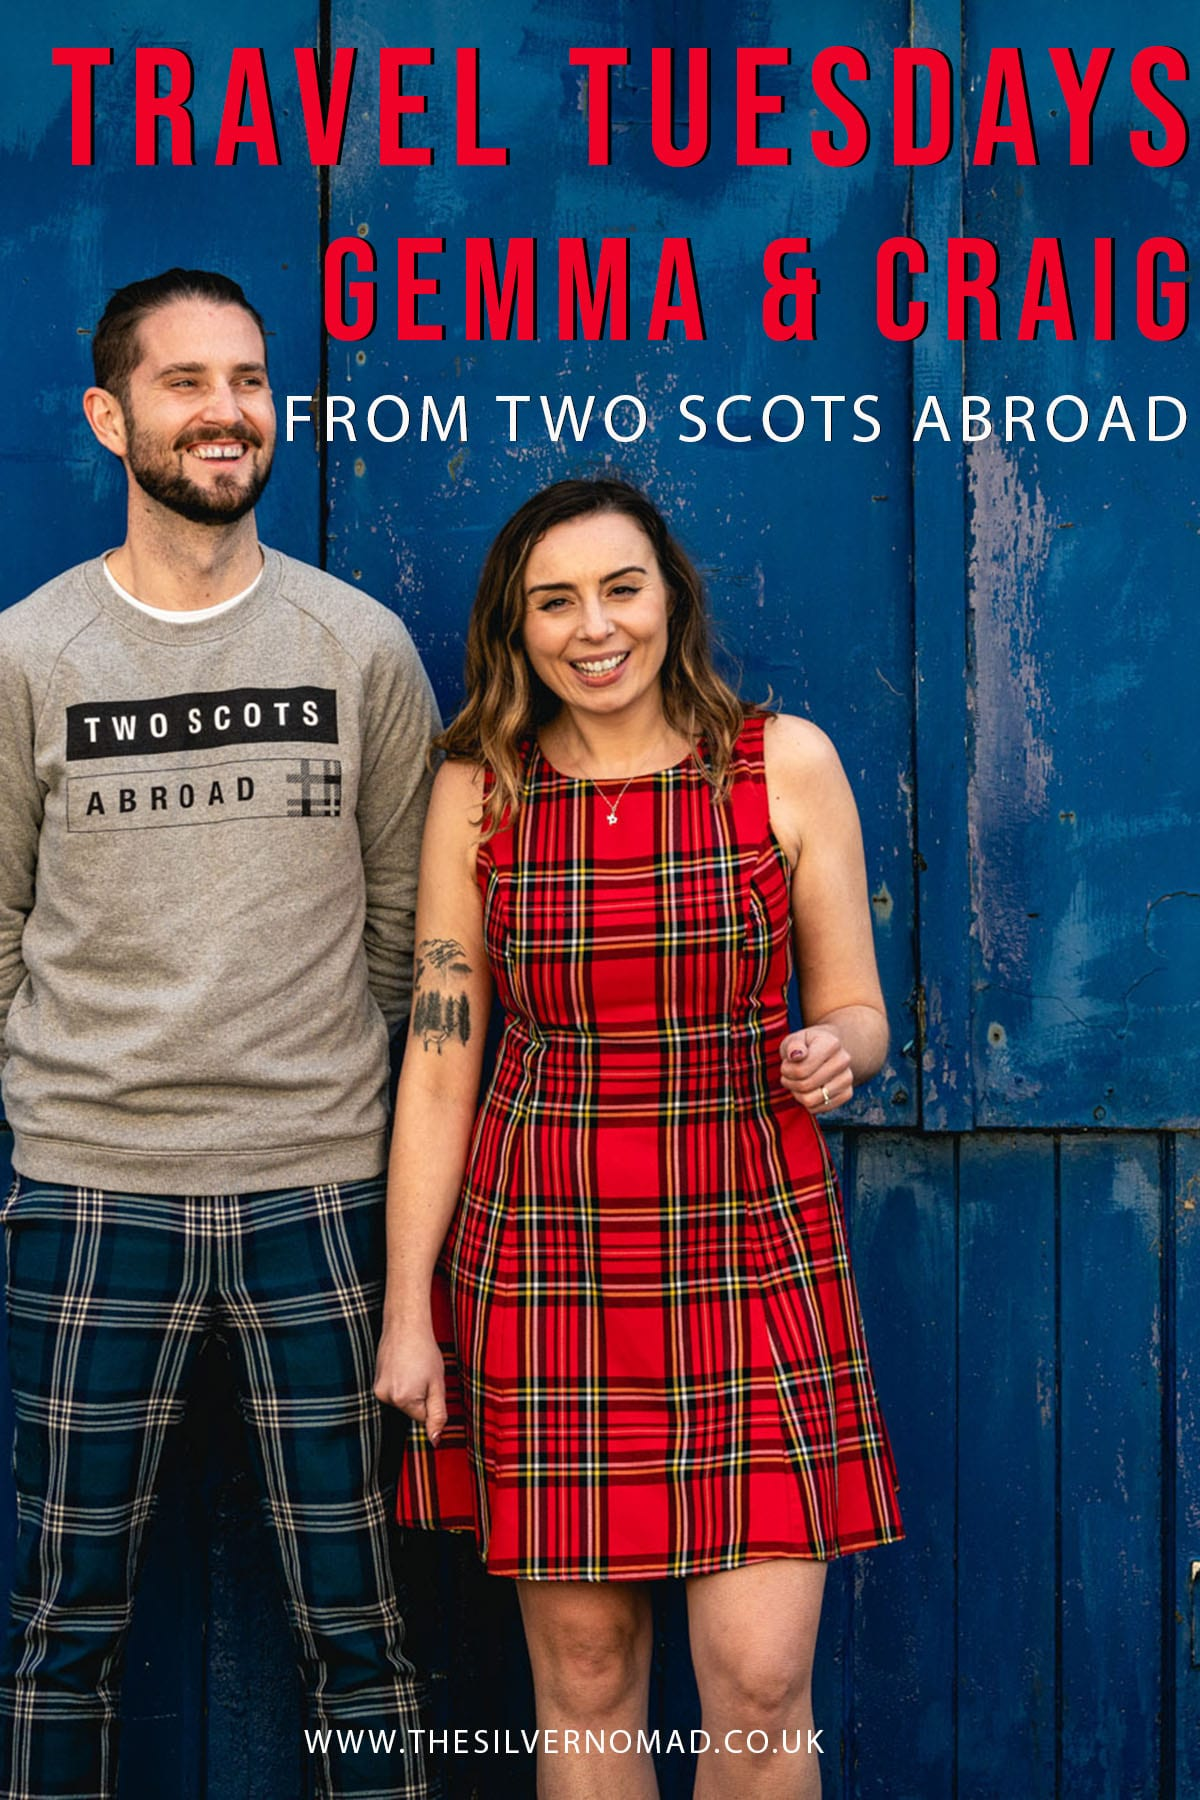 man wearing grey sweatshirt and blue tartan trousers and woman wearing red tartan dress. Both are smiling and standing against a royal blue metal background with the words Trave Tuesdays with Gemma and Craig from Two Scots Abroad superimposed